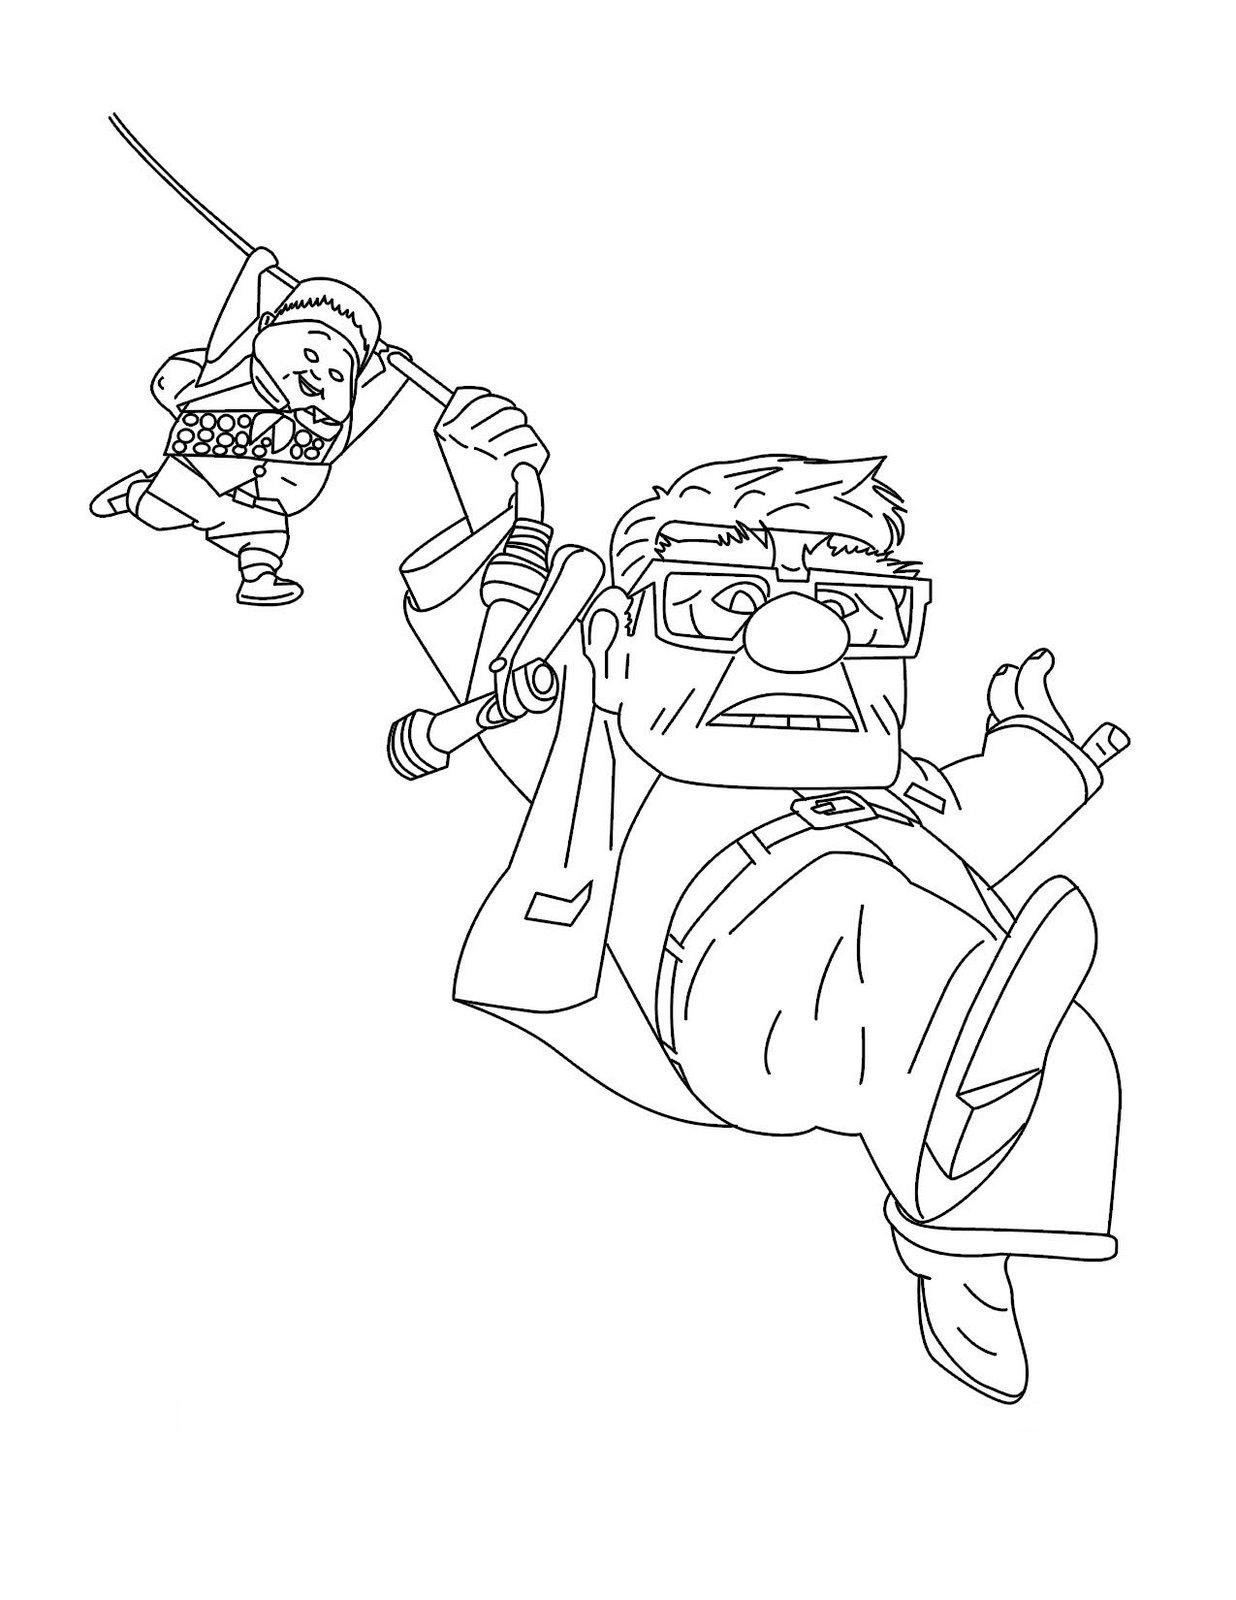 1236x1600 Secrets Coloring Pages From The Movie Up Work Gettin My Teach